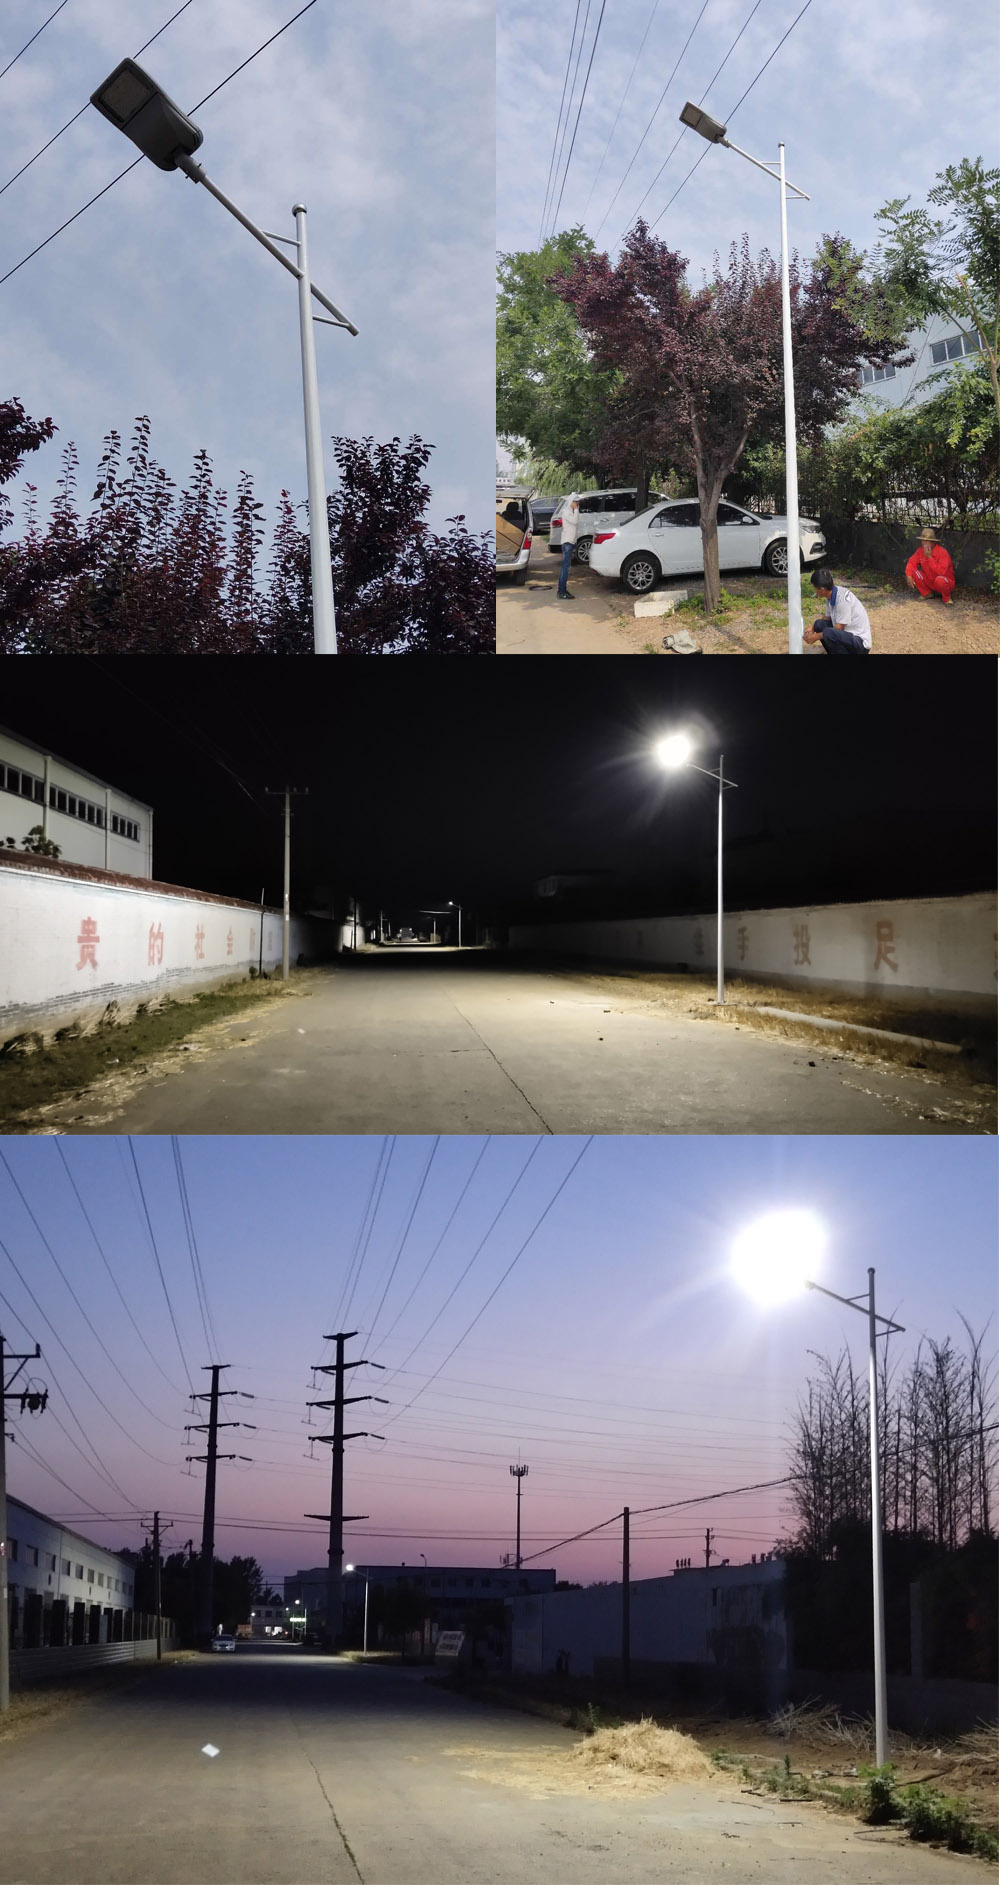 100 W 150 W 200 W 300 W Led Straat Licht Led Streetlight Met Camera